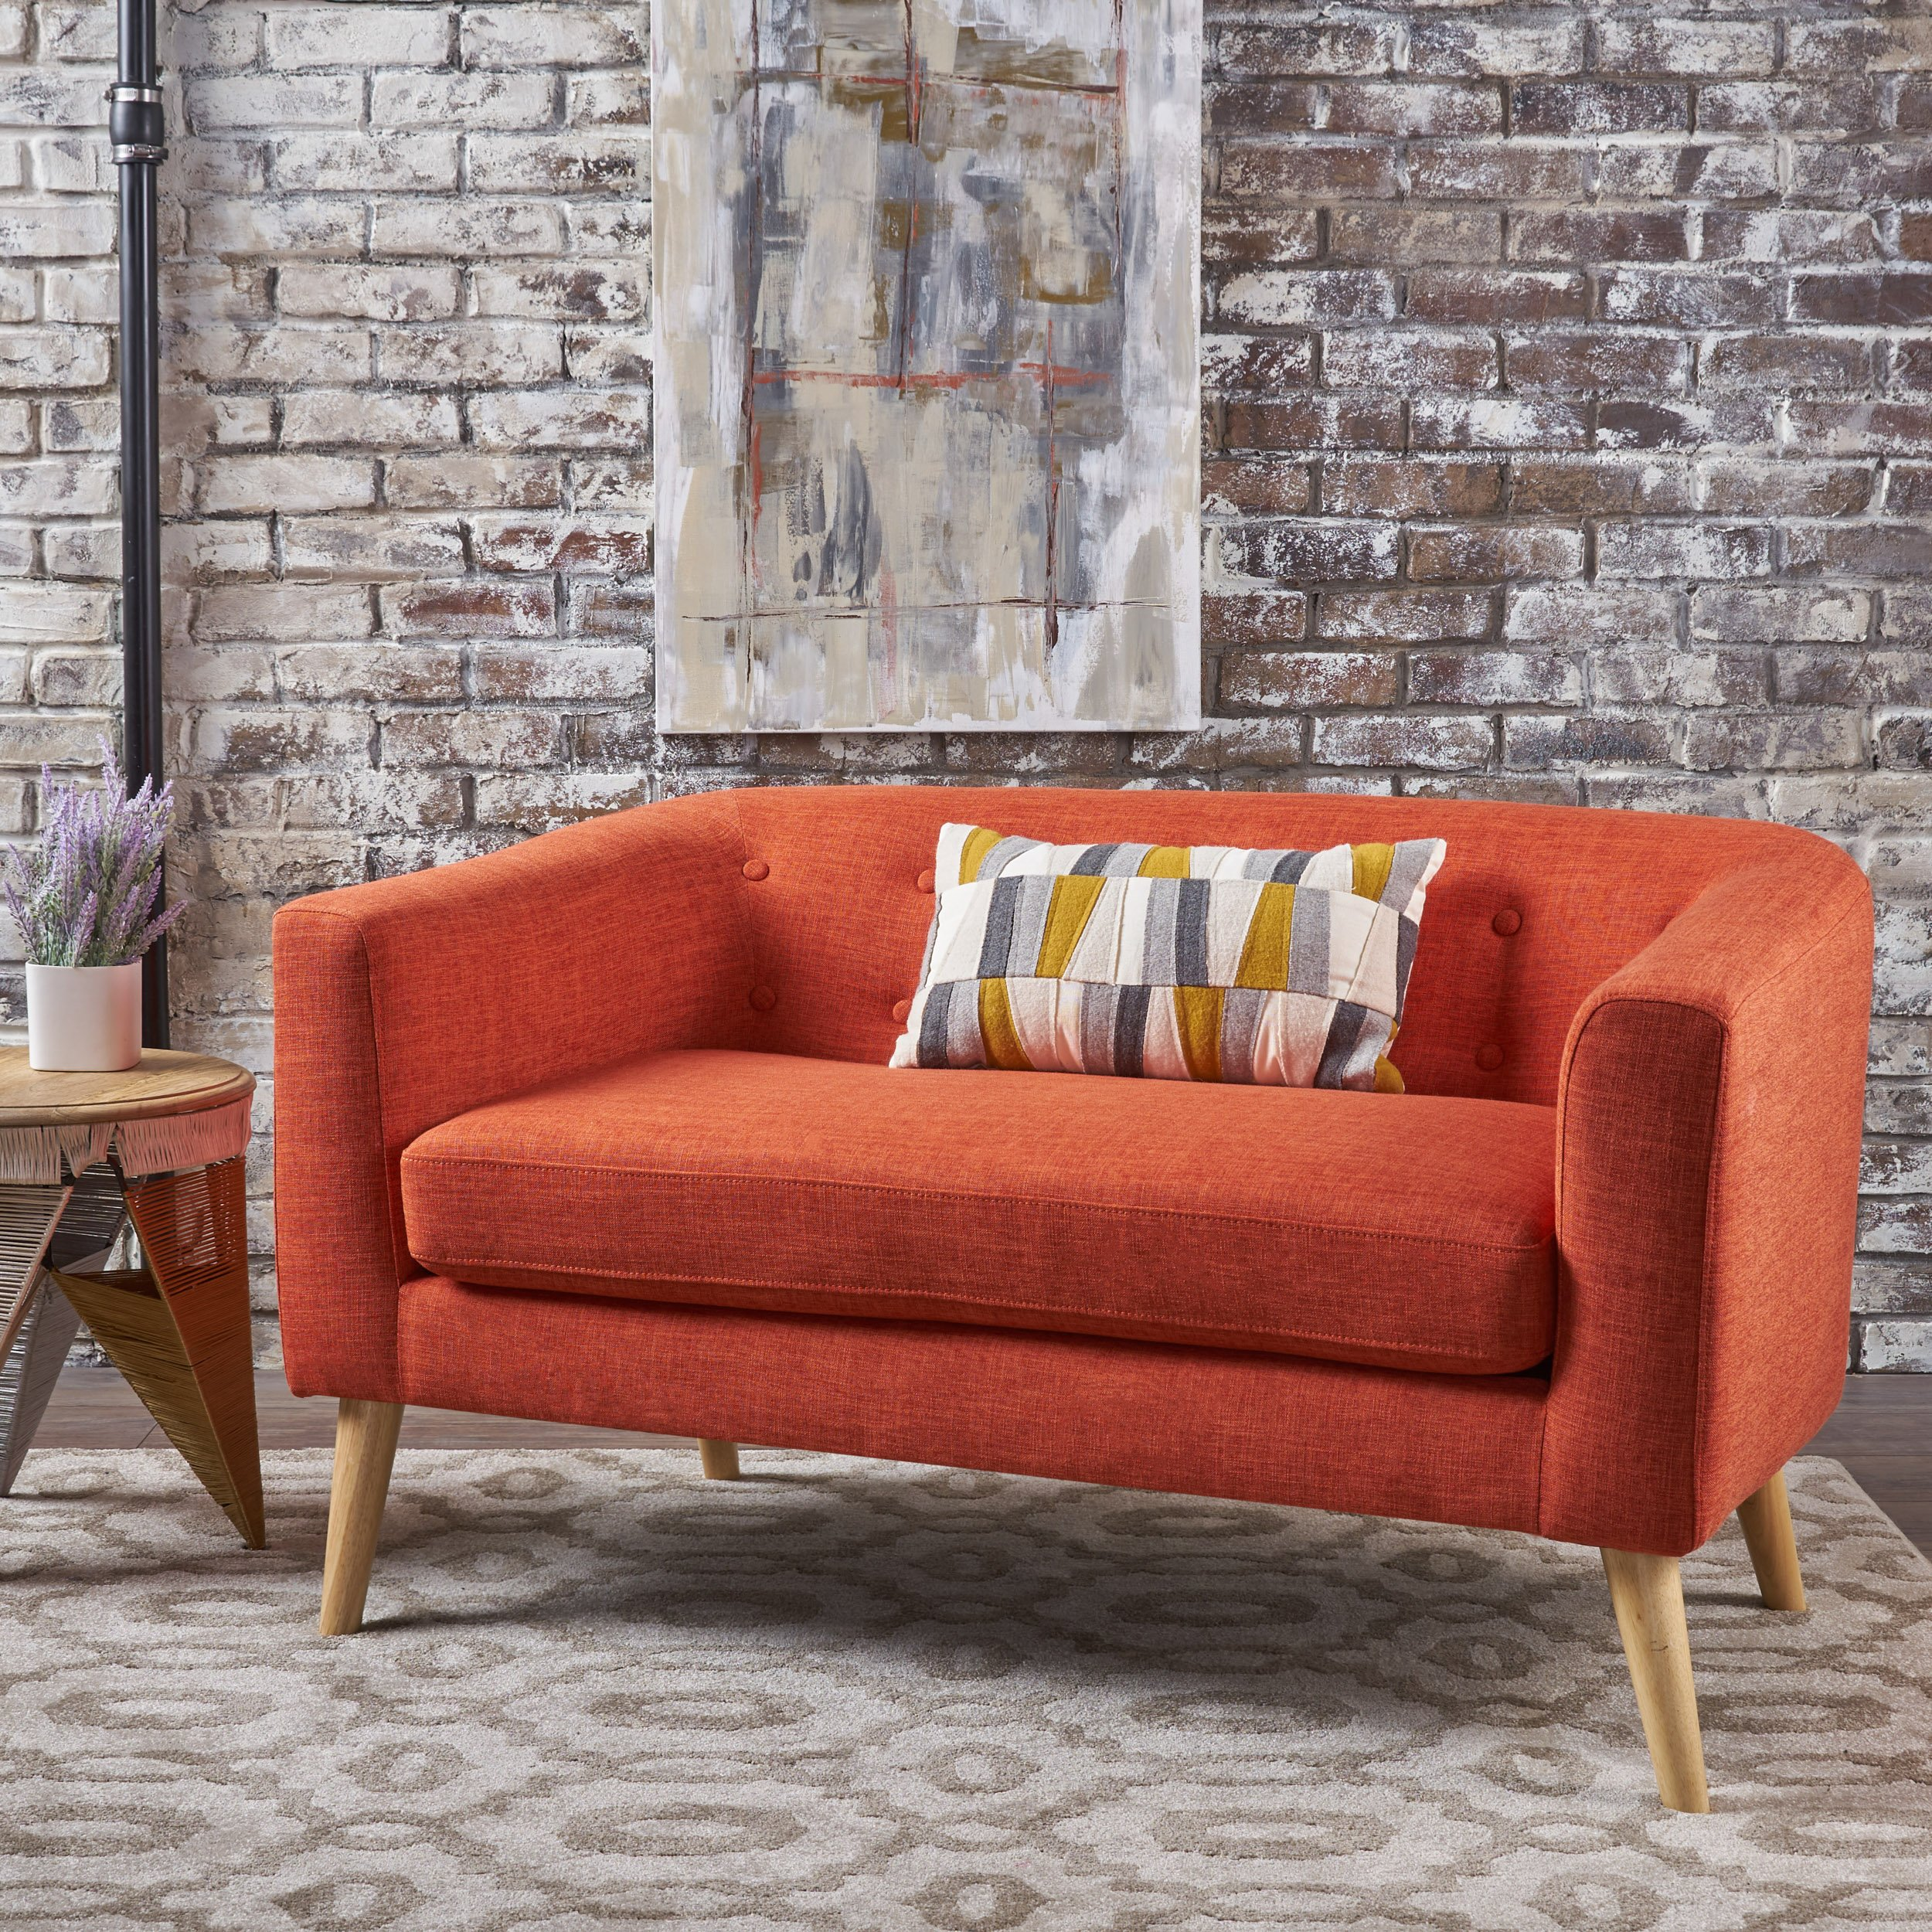 Althea Button Back Mid Century Fabric Modern Loveseat (Muted Orange) by GDF Studio